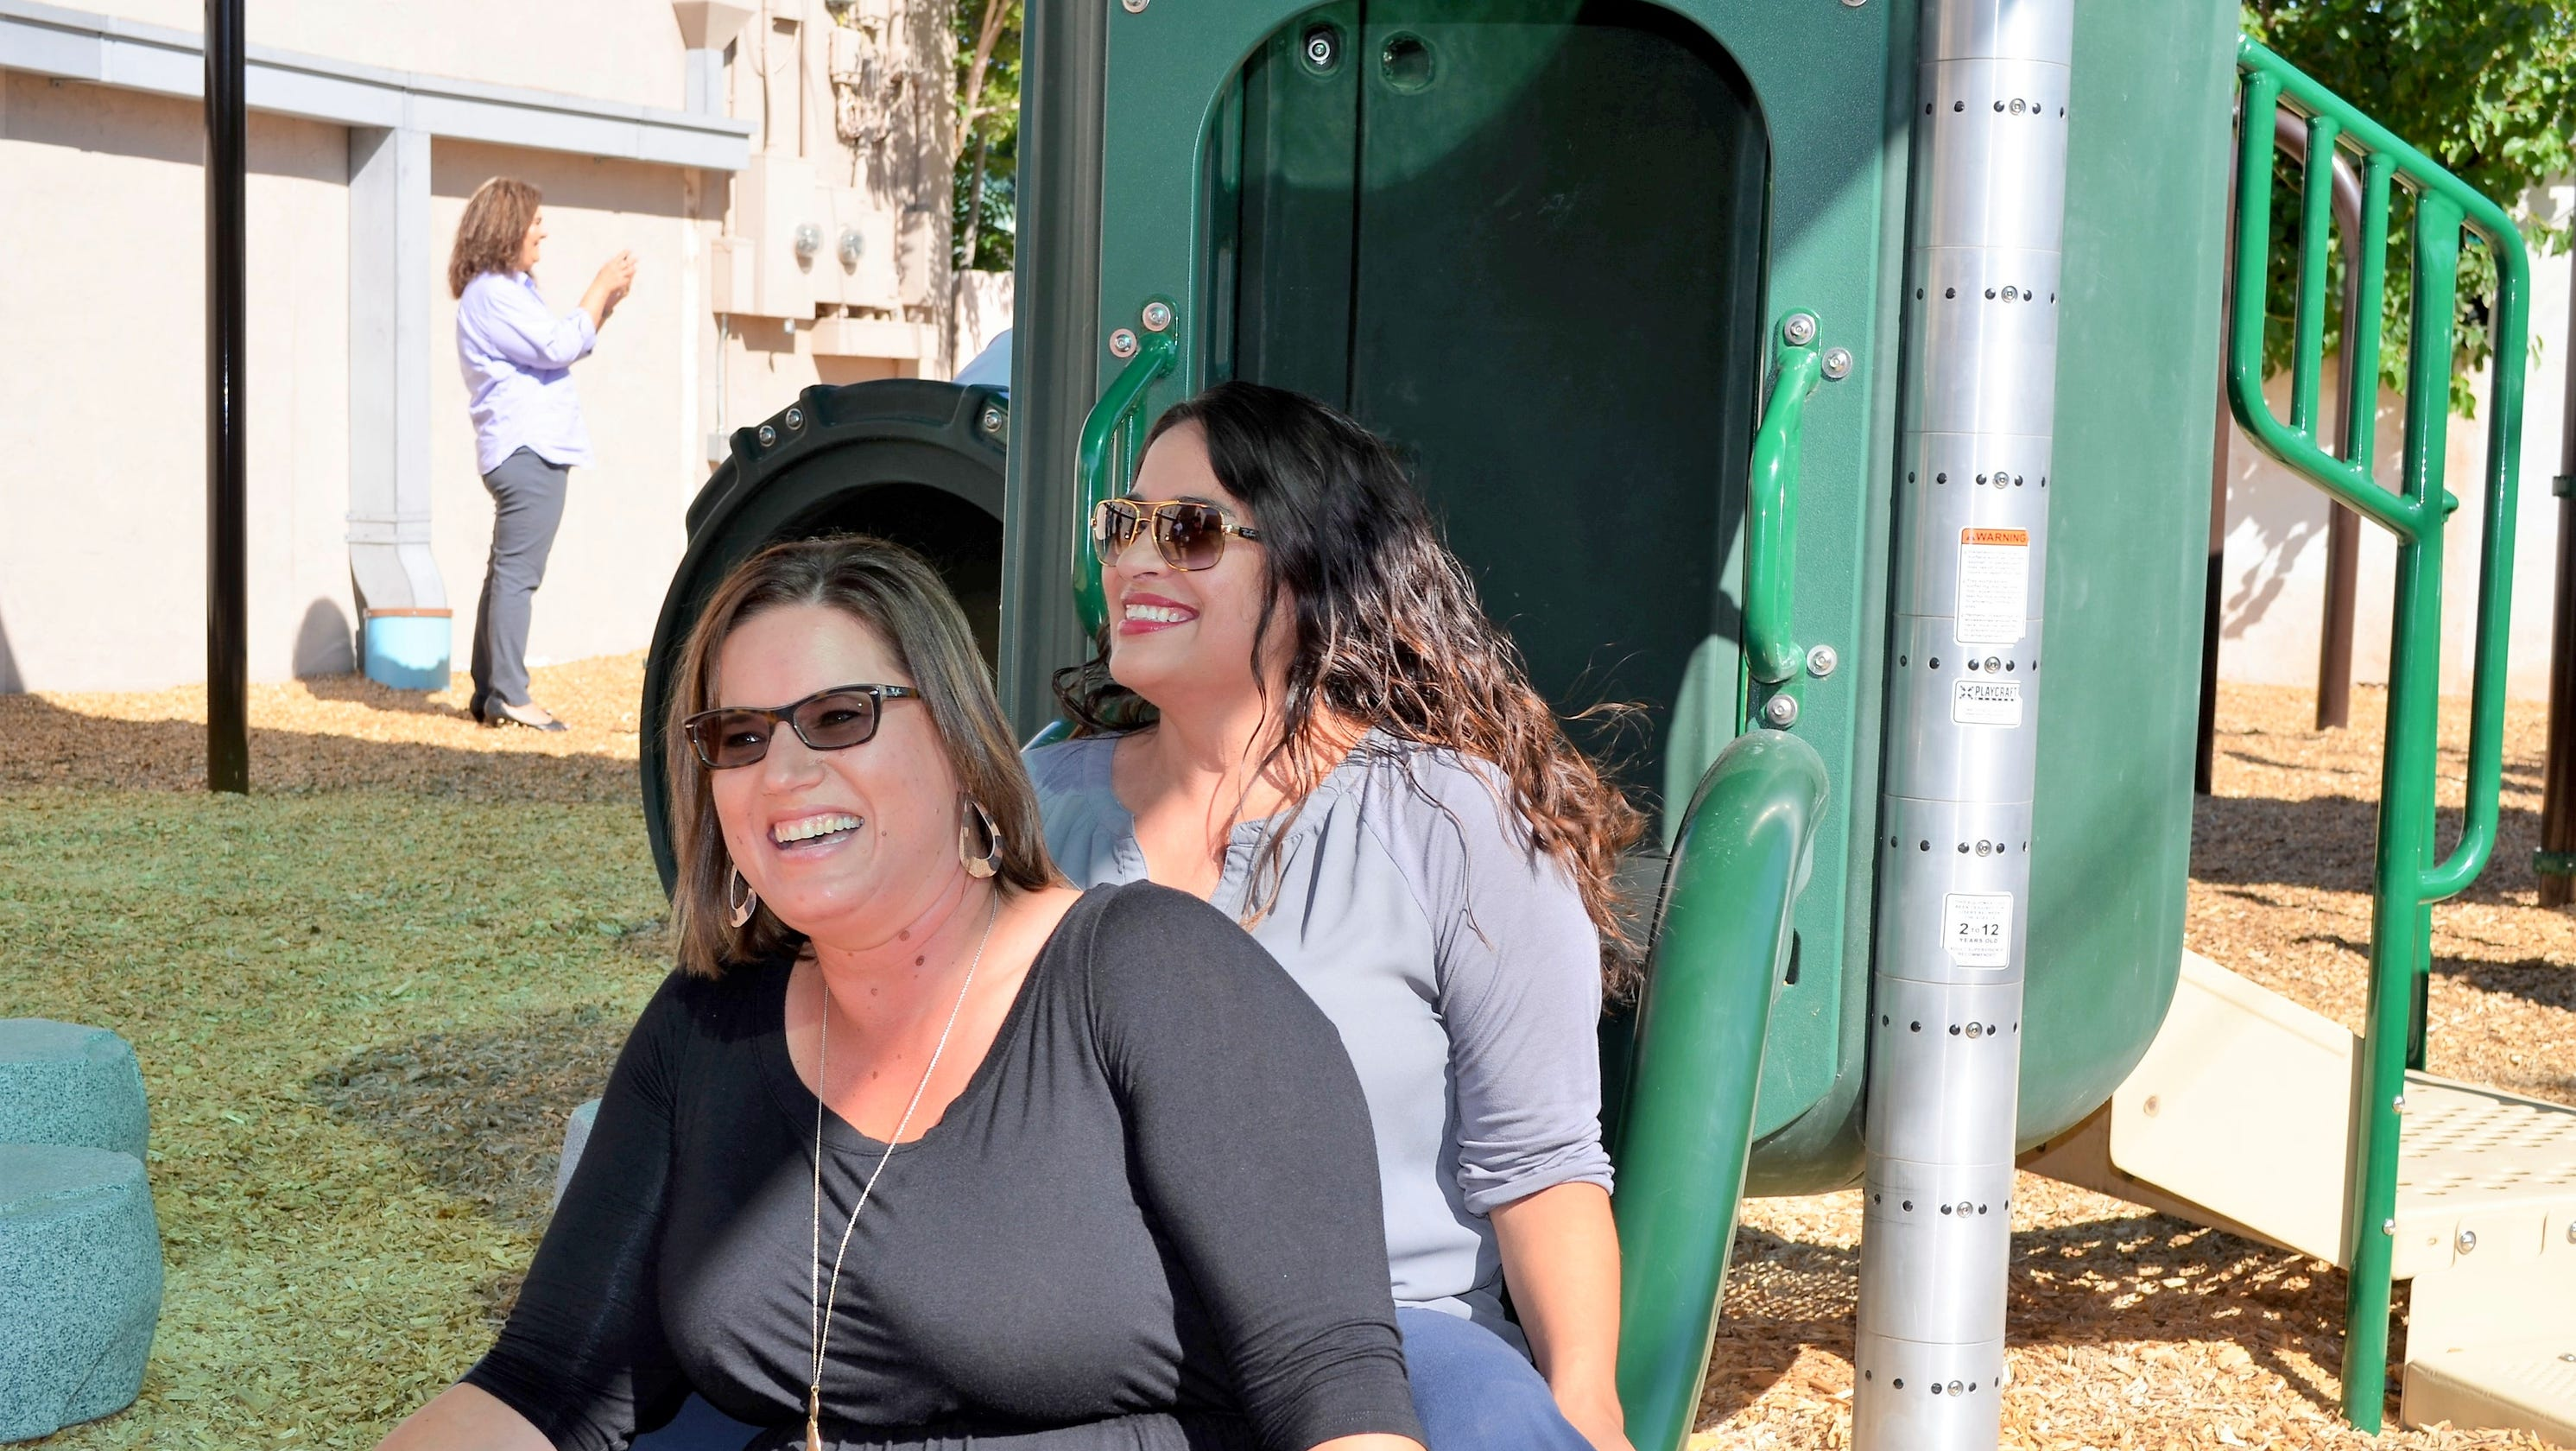 Luna County opens children's playground at health and well